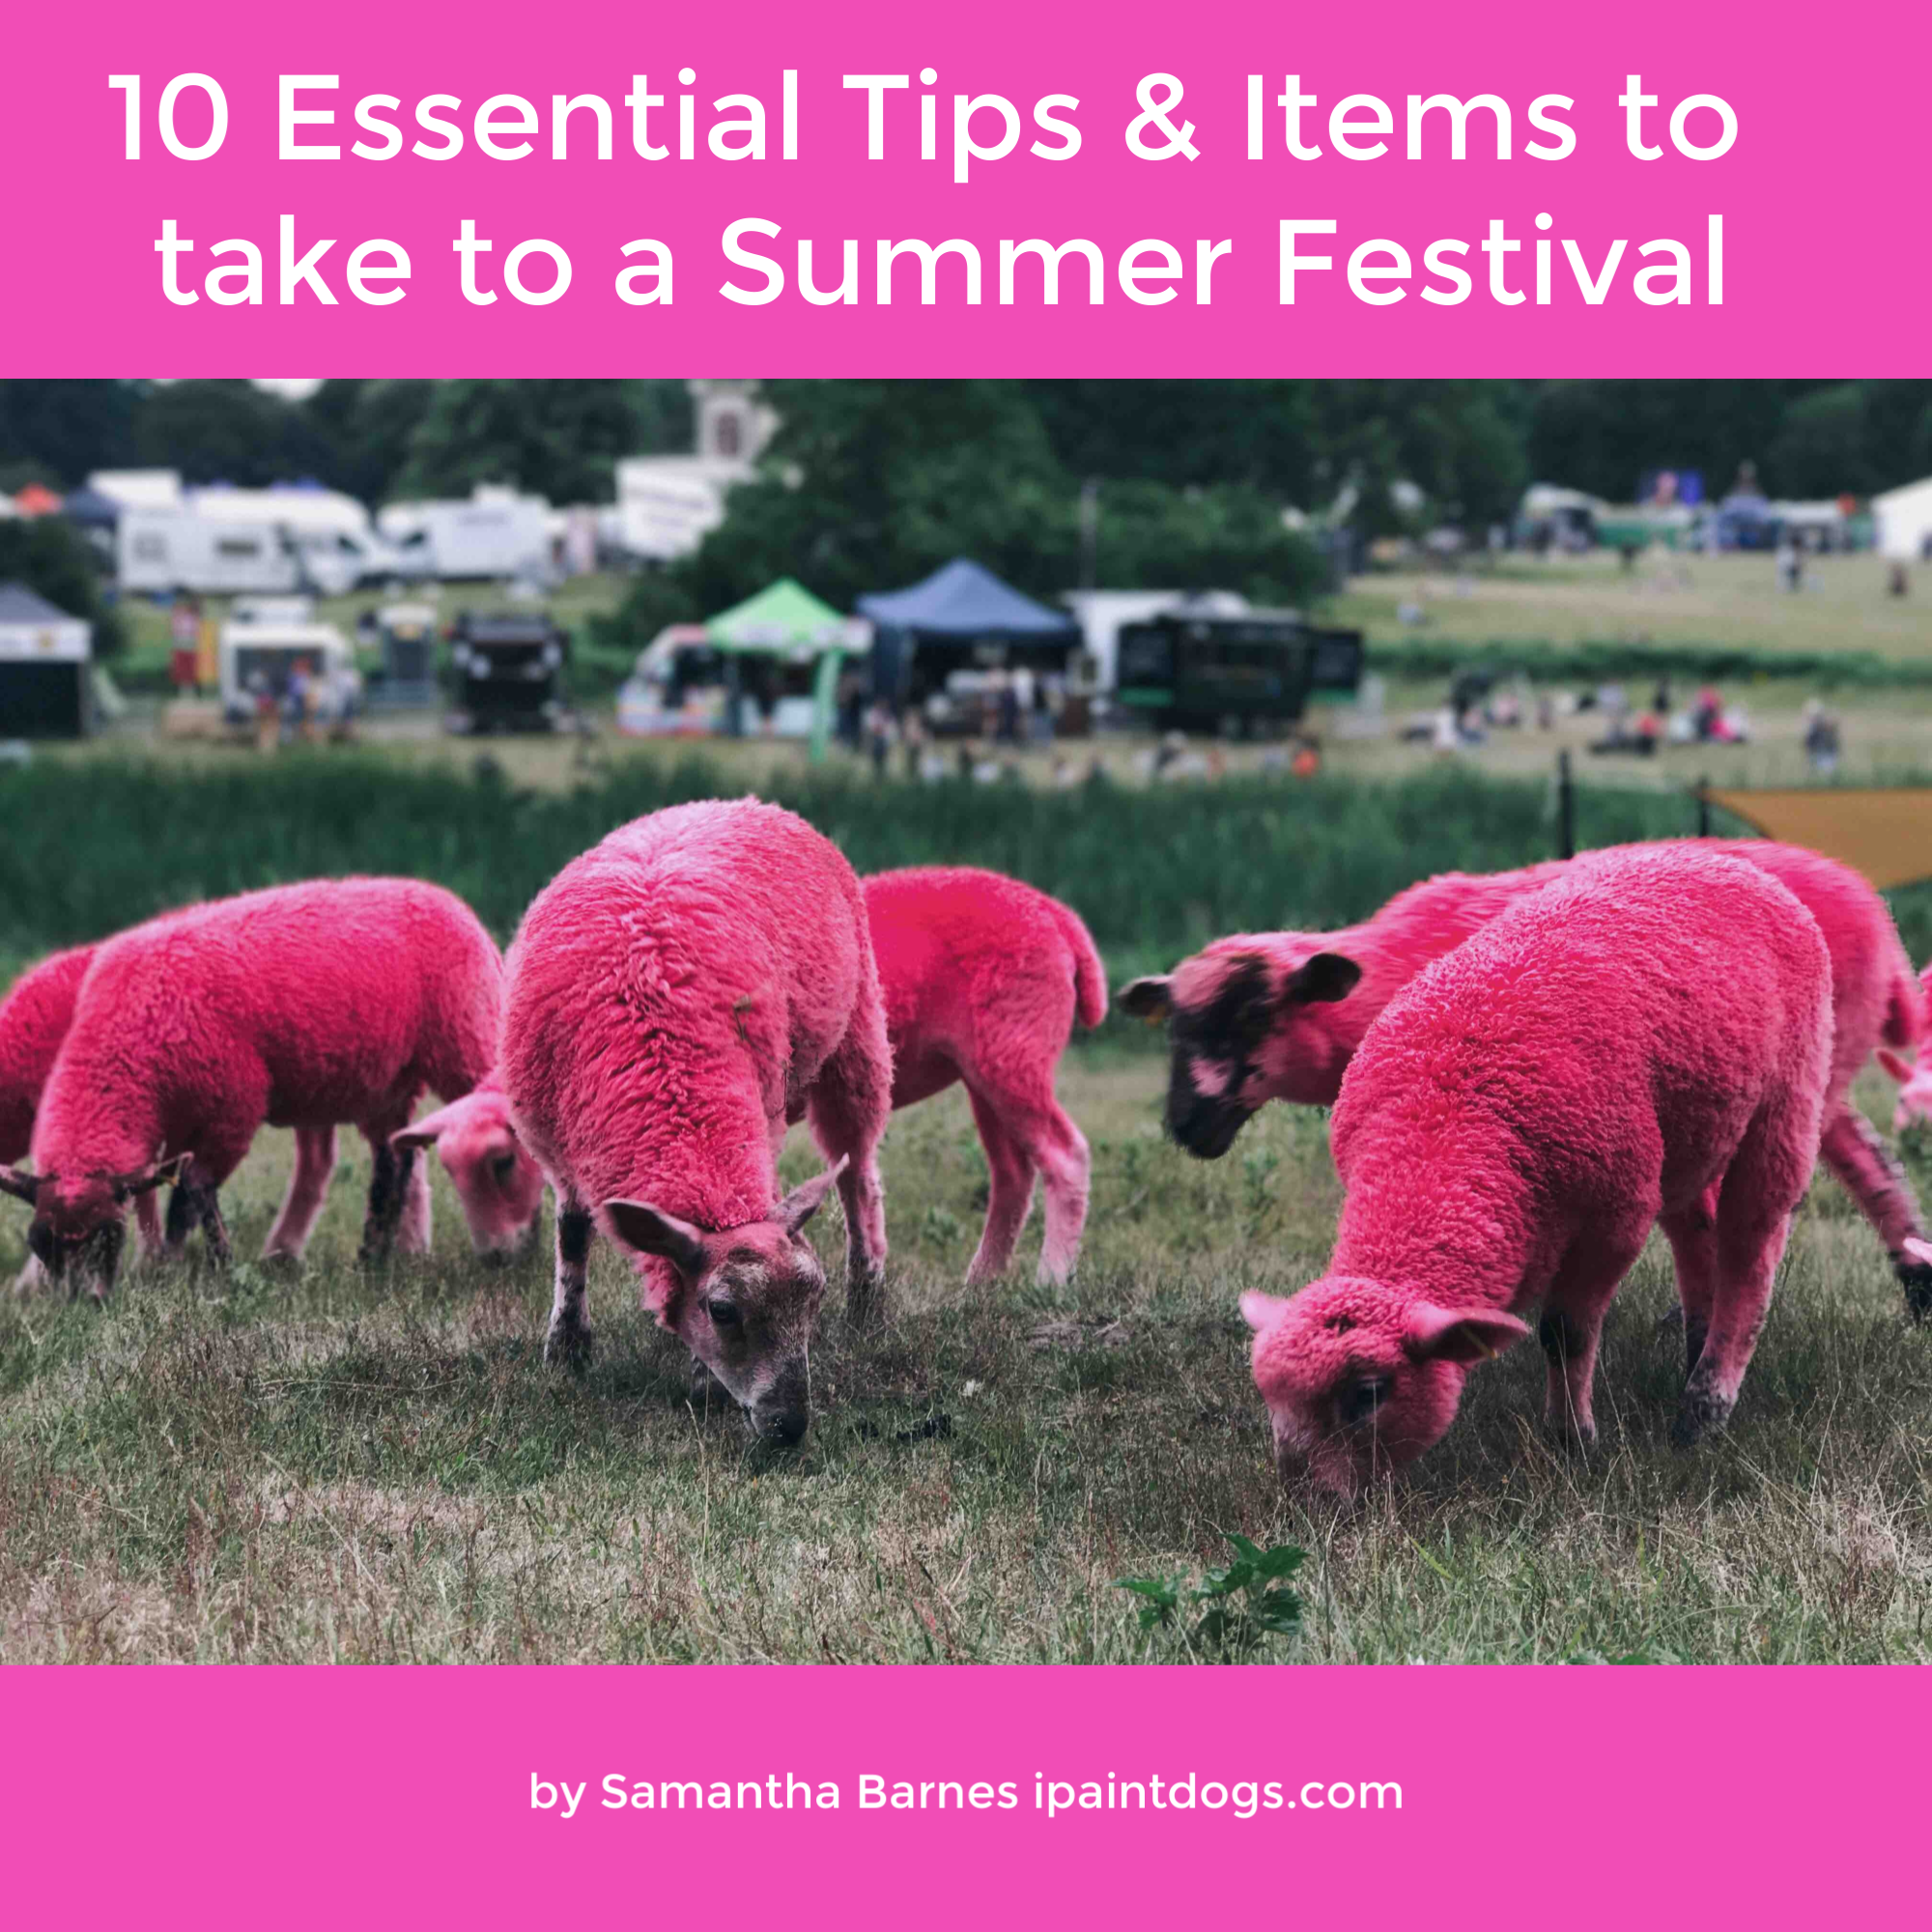 10 Essential Tips & Items to take to a Summer Festival, by Samantha Barnes, ipaintdogs.com